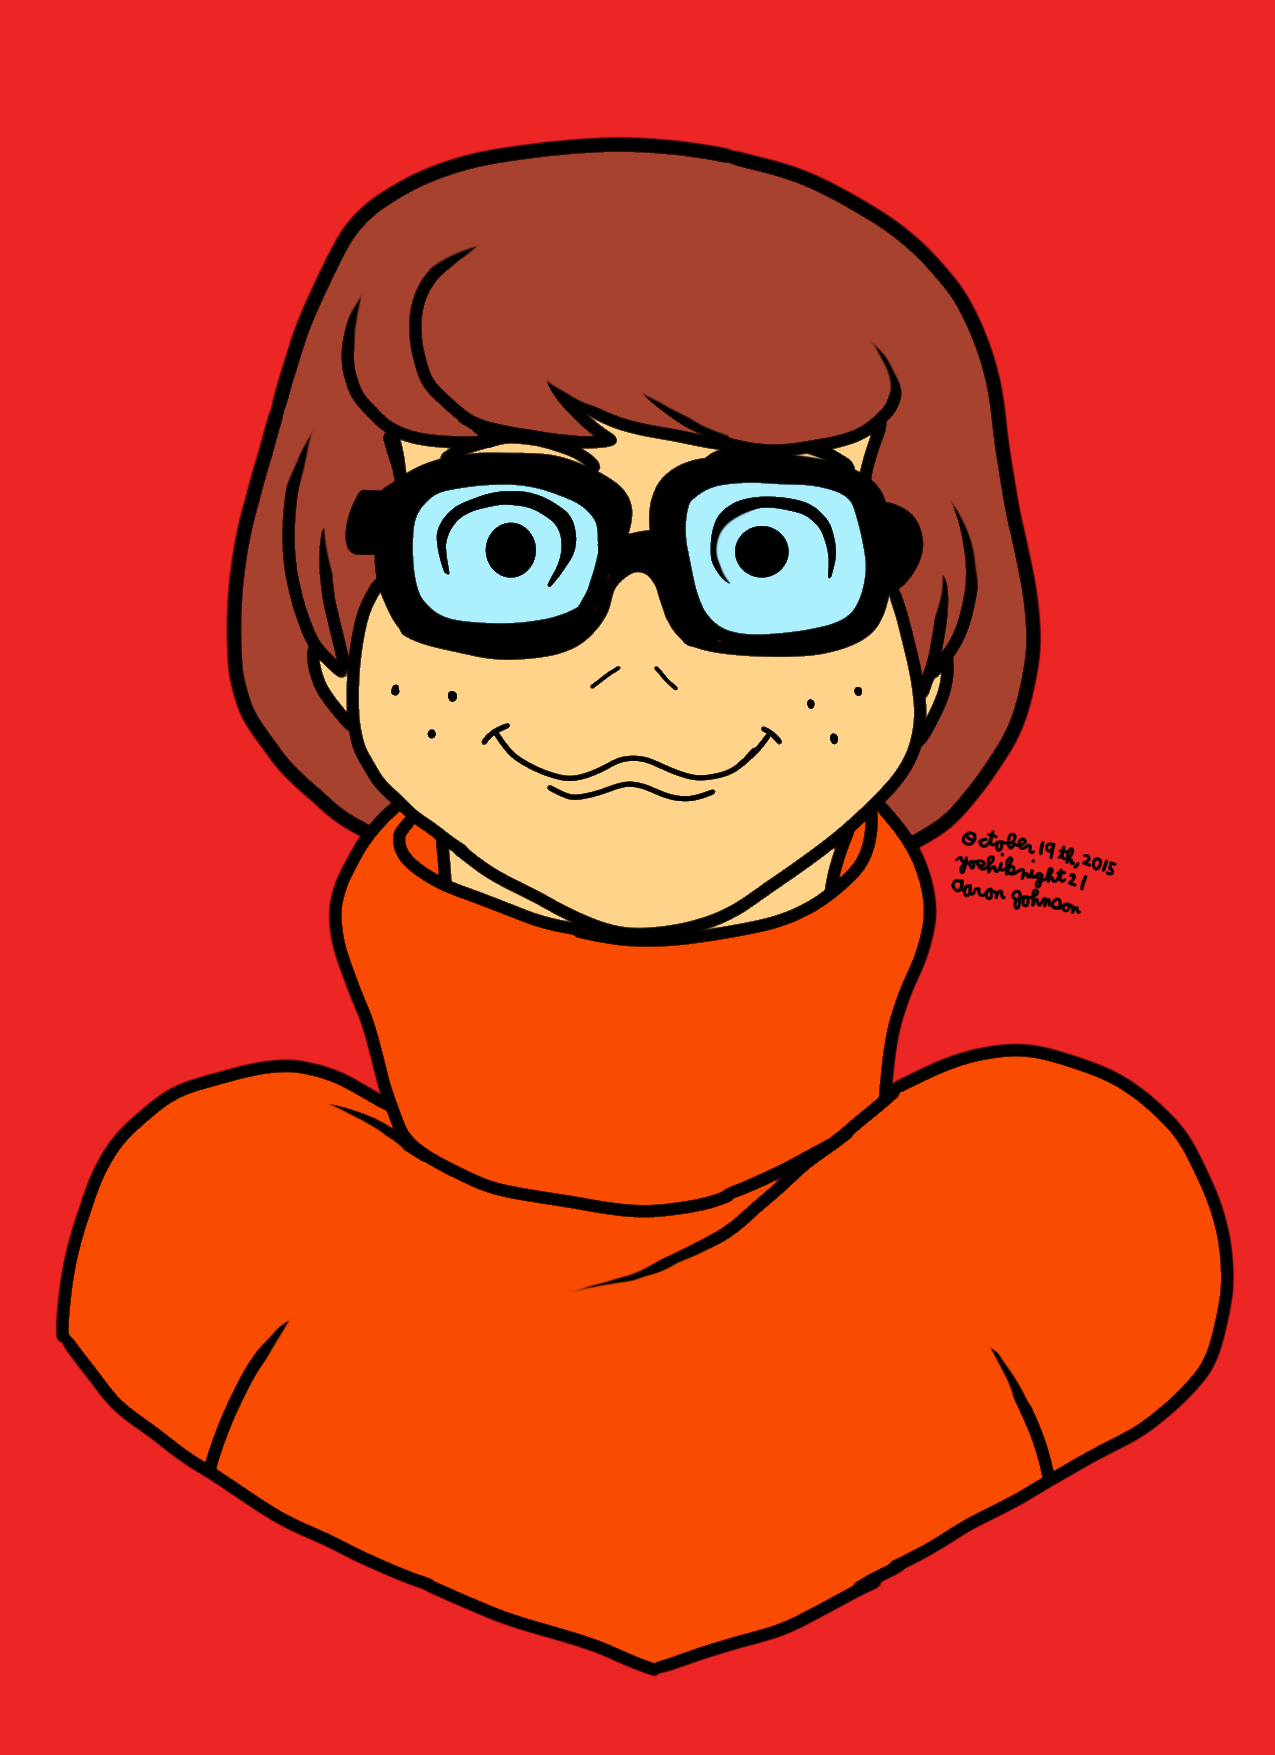 Scooby Doo Face PNG - 147643